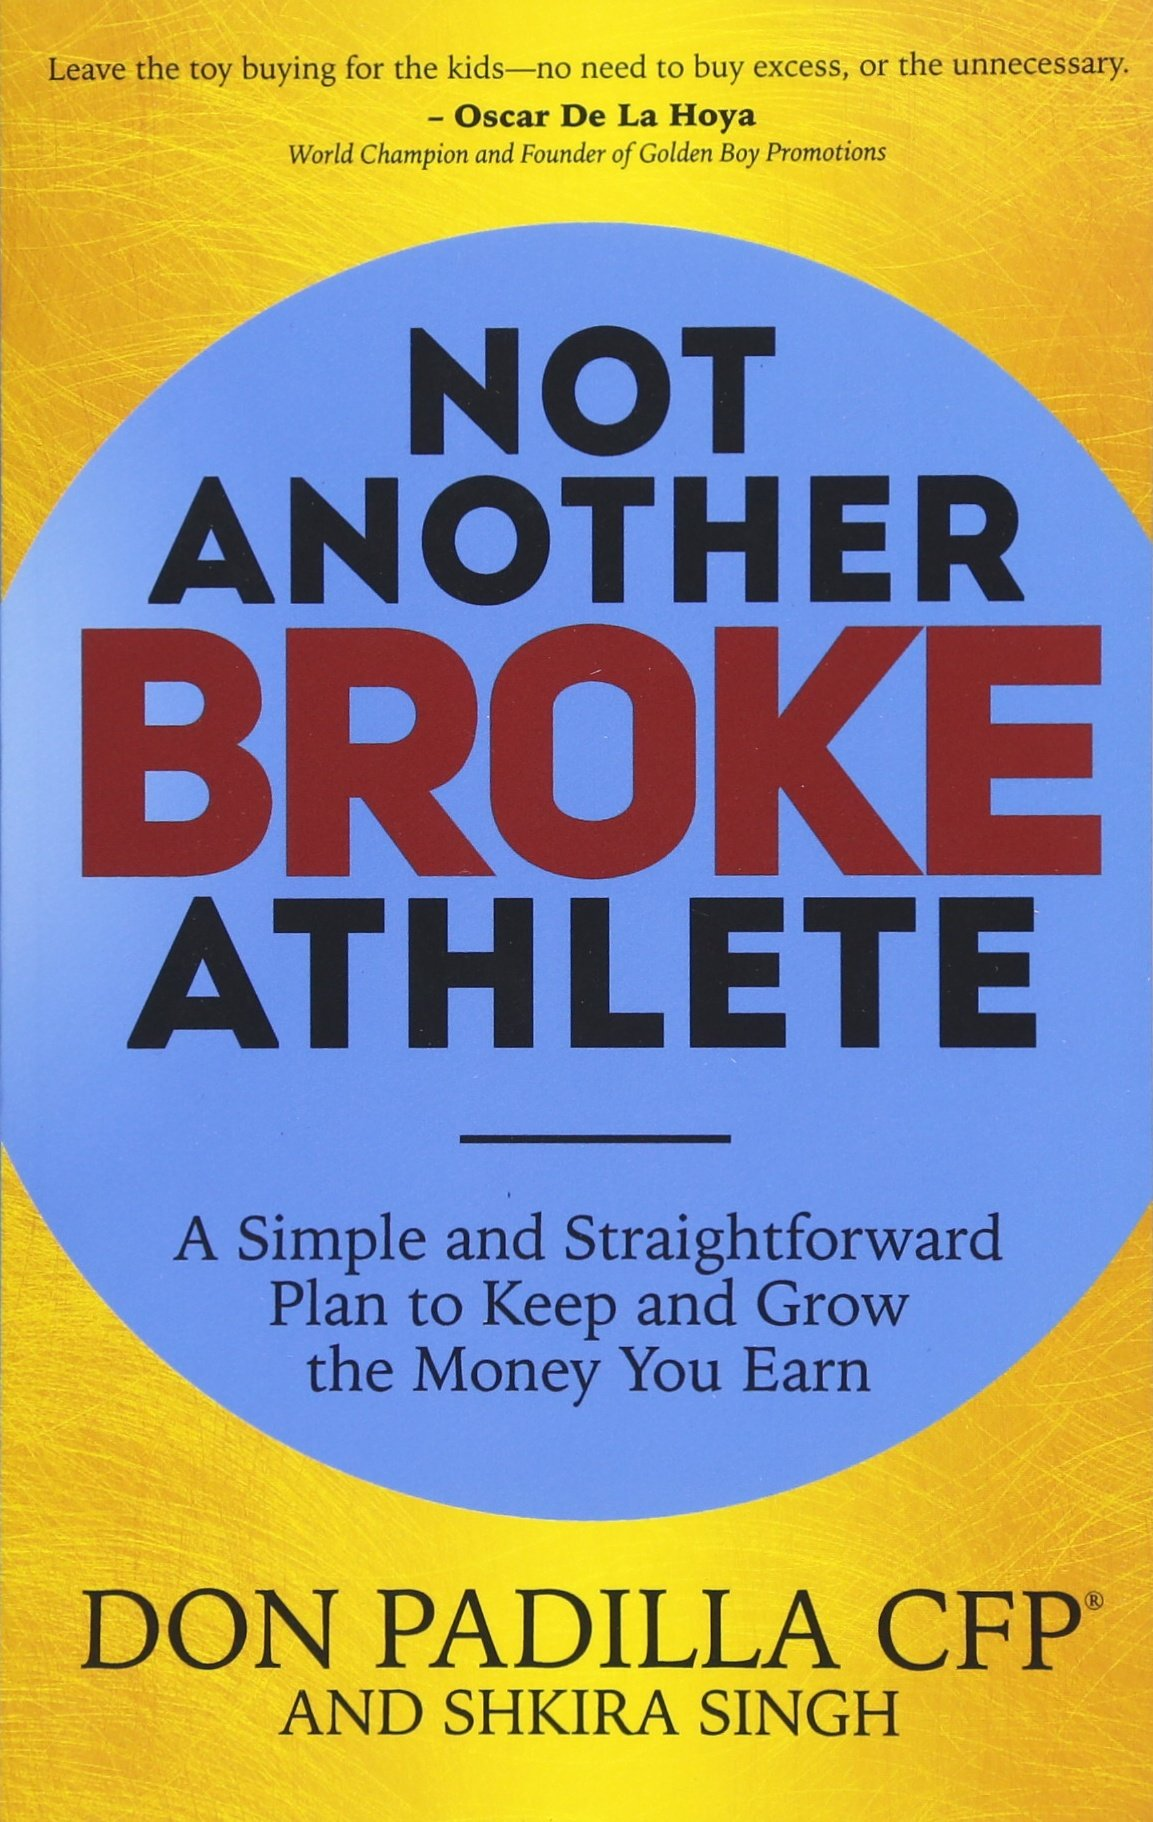 Not Another Broke Athlete: A Simple and Straightforward Plan to Keep and Grow the Money You Earn